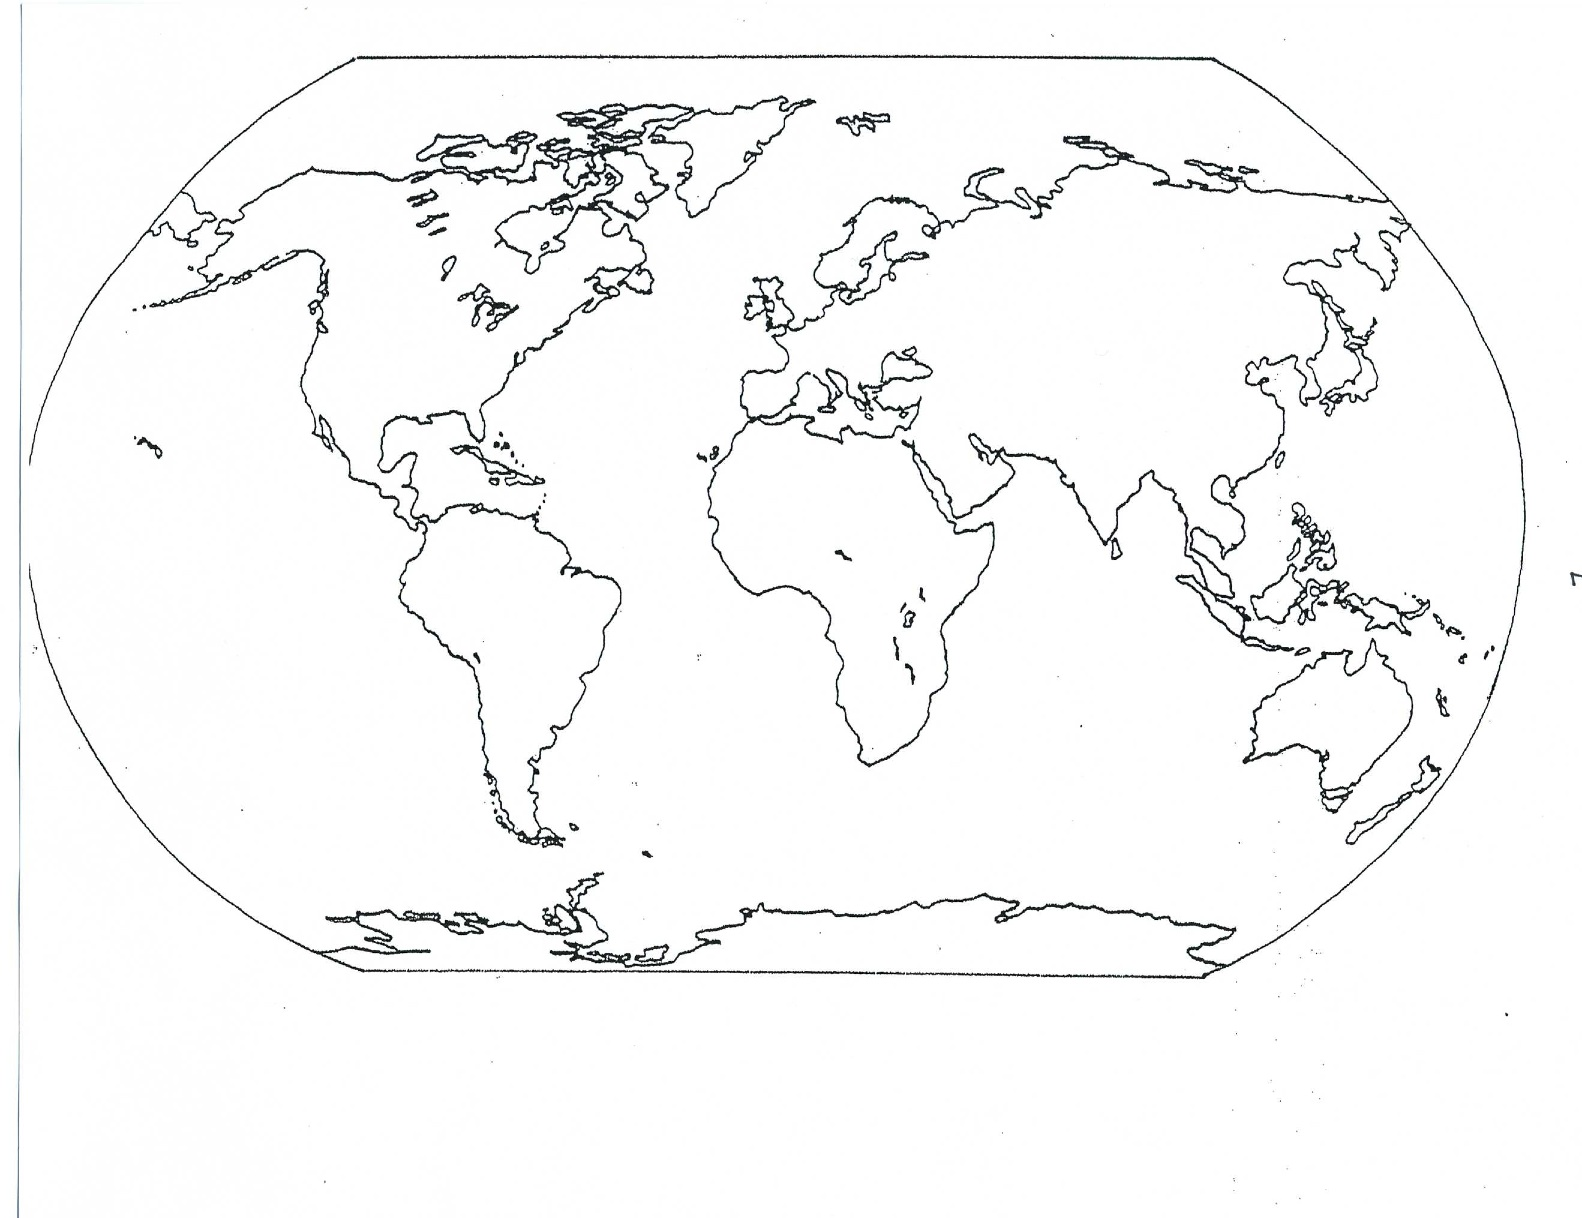 Map of the world drawing at getdrawings free for personal use 1582x1218 image gumiabroncs Image collections